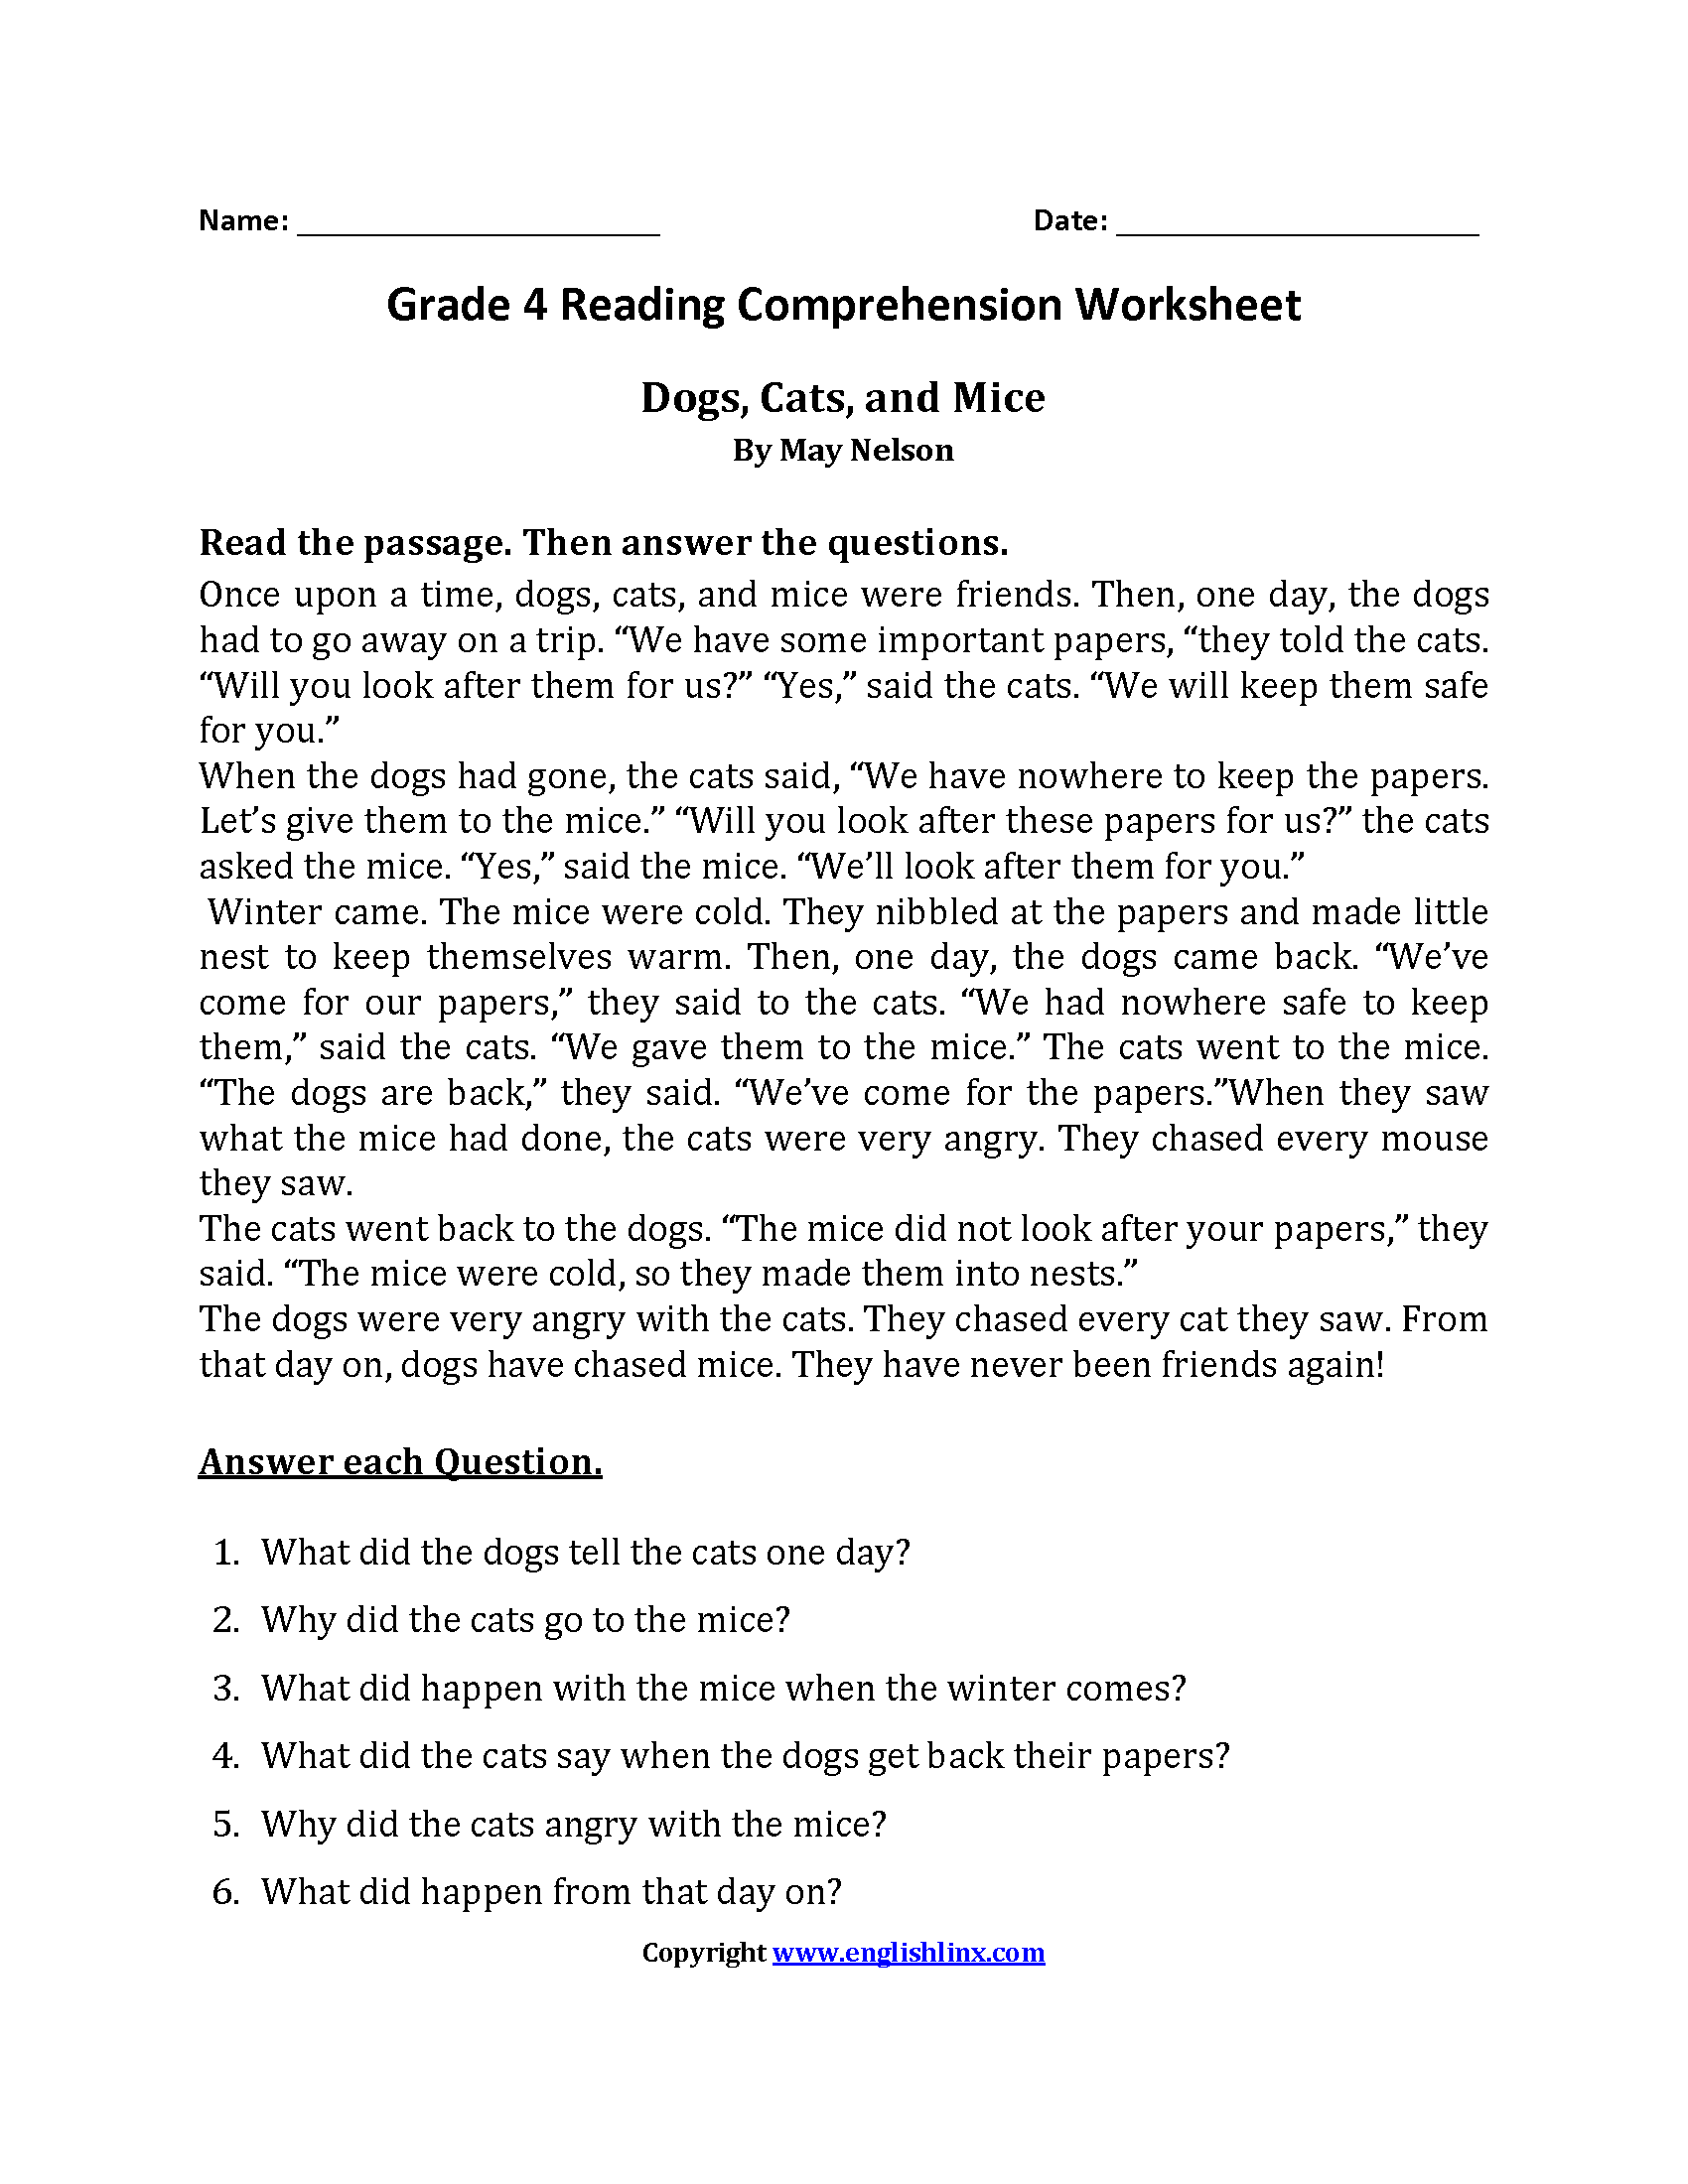 Worksheet Comprehension Passages For Grade 2 reading worksheets fourth grade worksheets